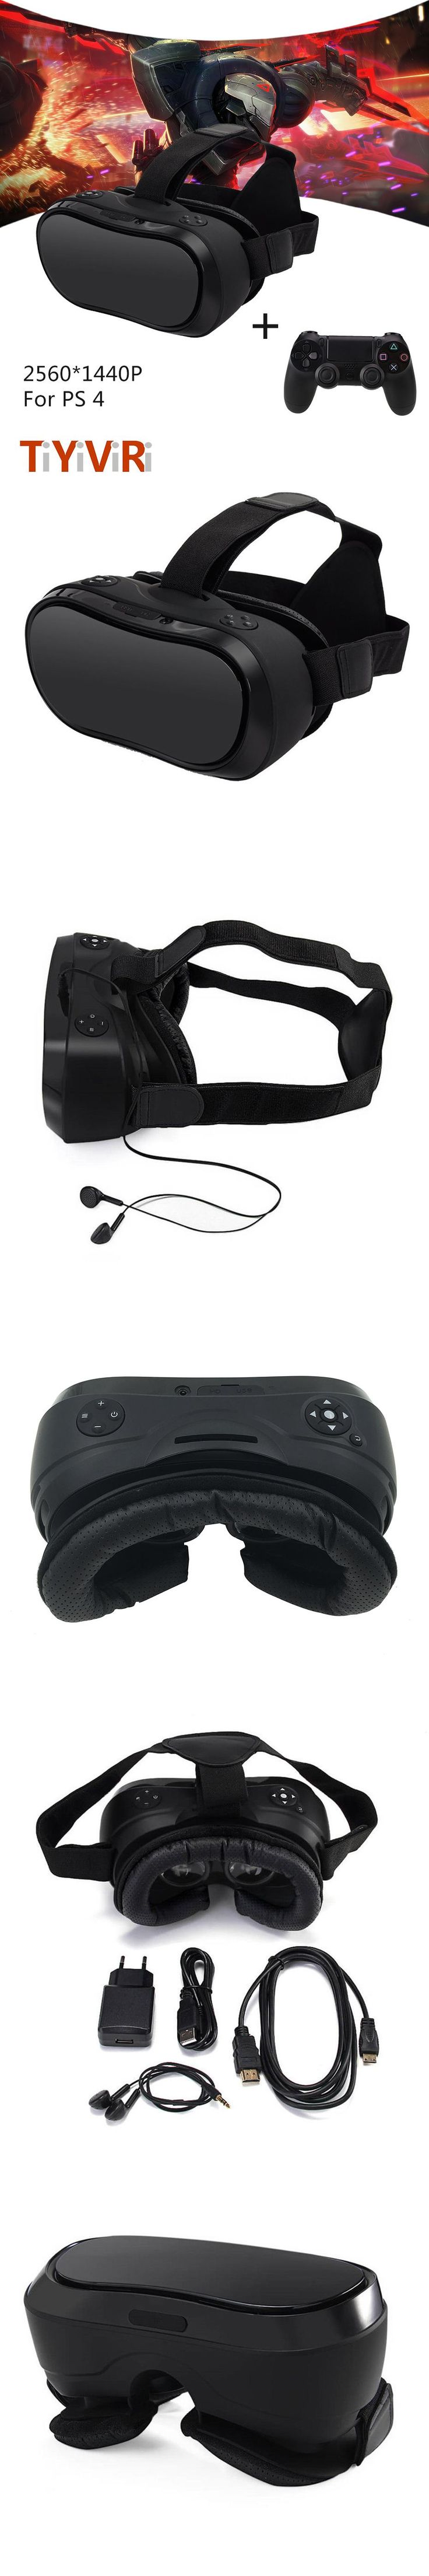 VR 3D Headset for PS 4 Xbox 360 Host PC 2560*1440 RK 3288 Virtual Reality Goggles All In One VR With Wired Controllers for PS 4